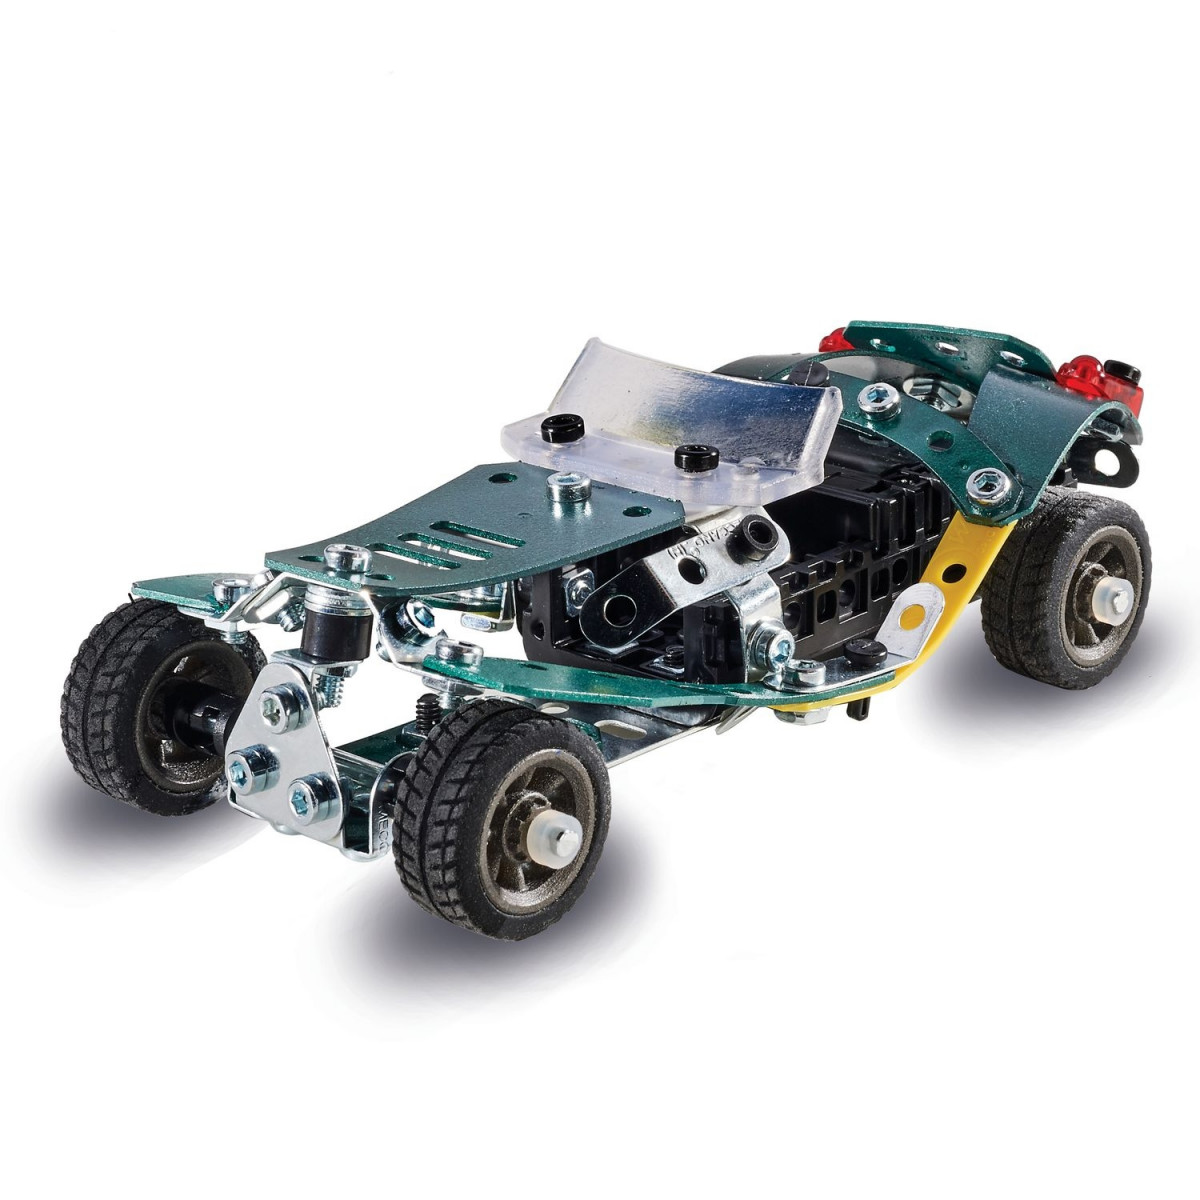 6040176 CABRIOLET RETROFRICTION 5 MODELES MECCANO ROADSTER